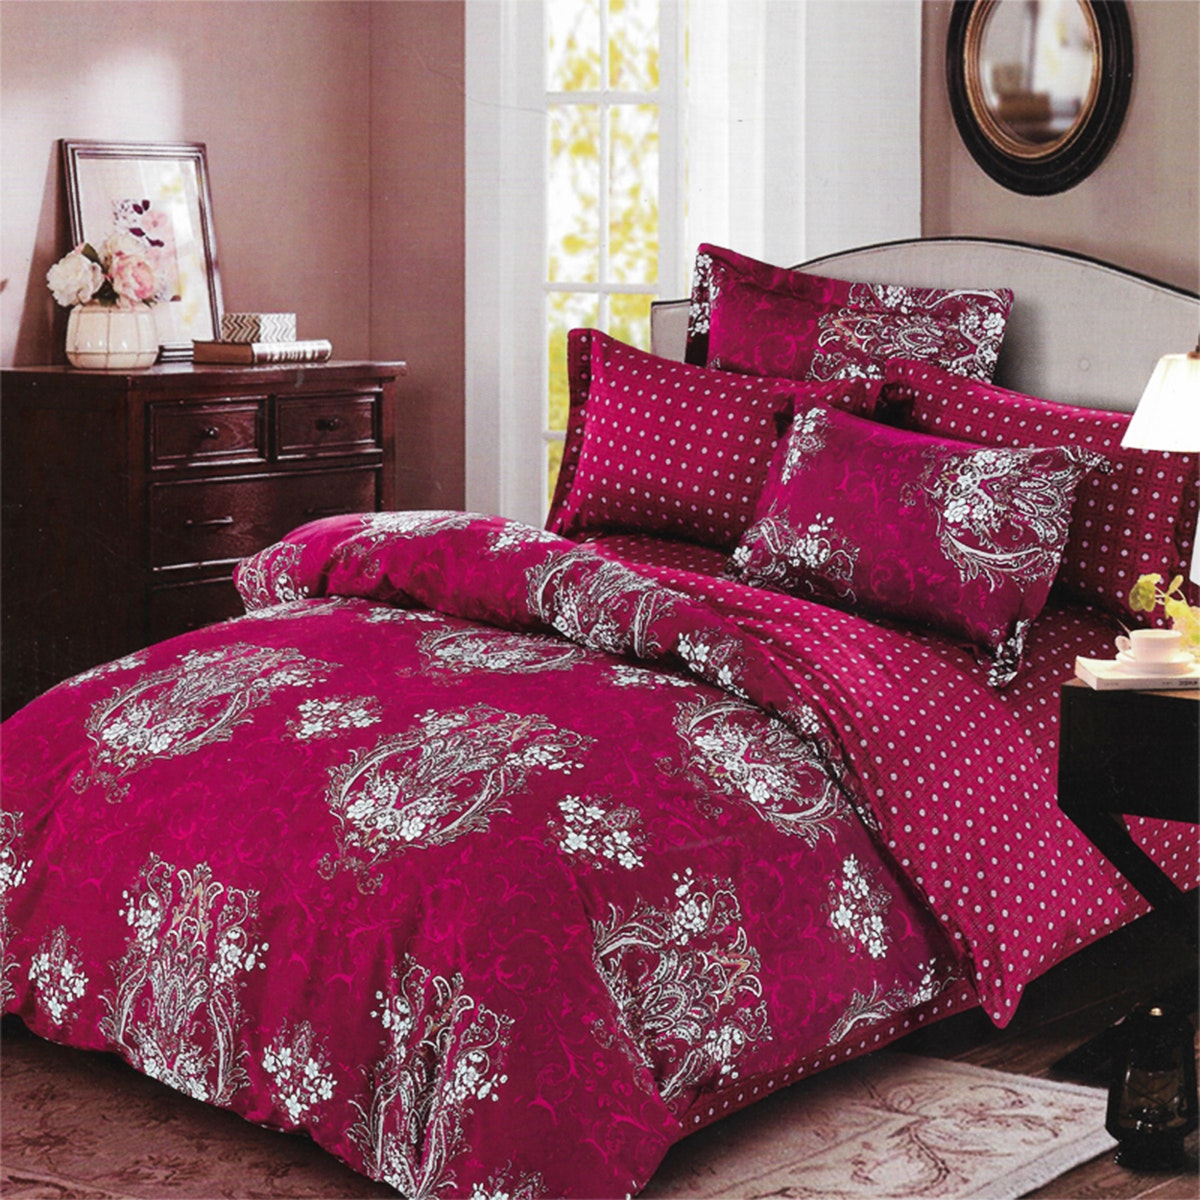 Sleep Buddy Set Sprei Red Carve Cotton Sateen 160x200x30